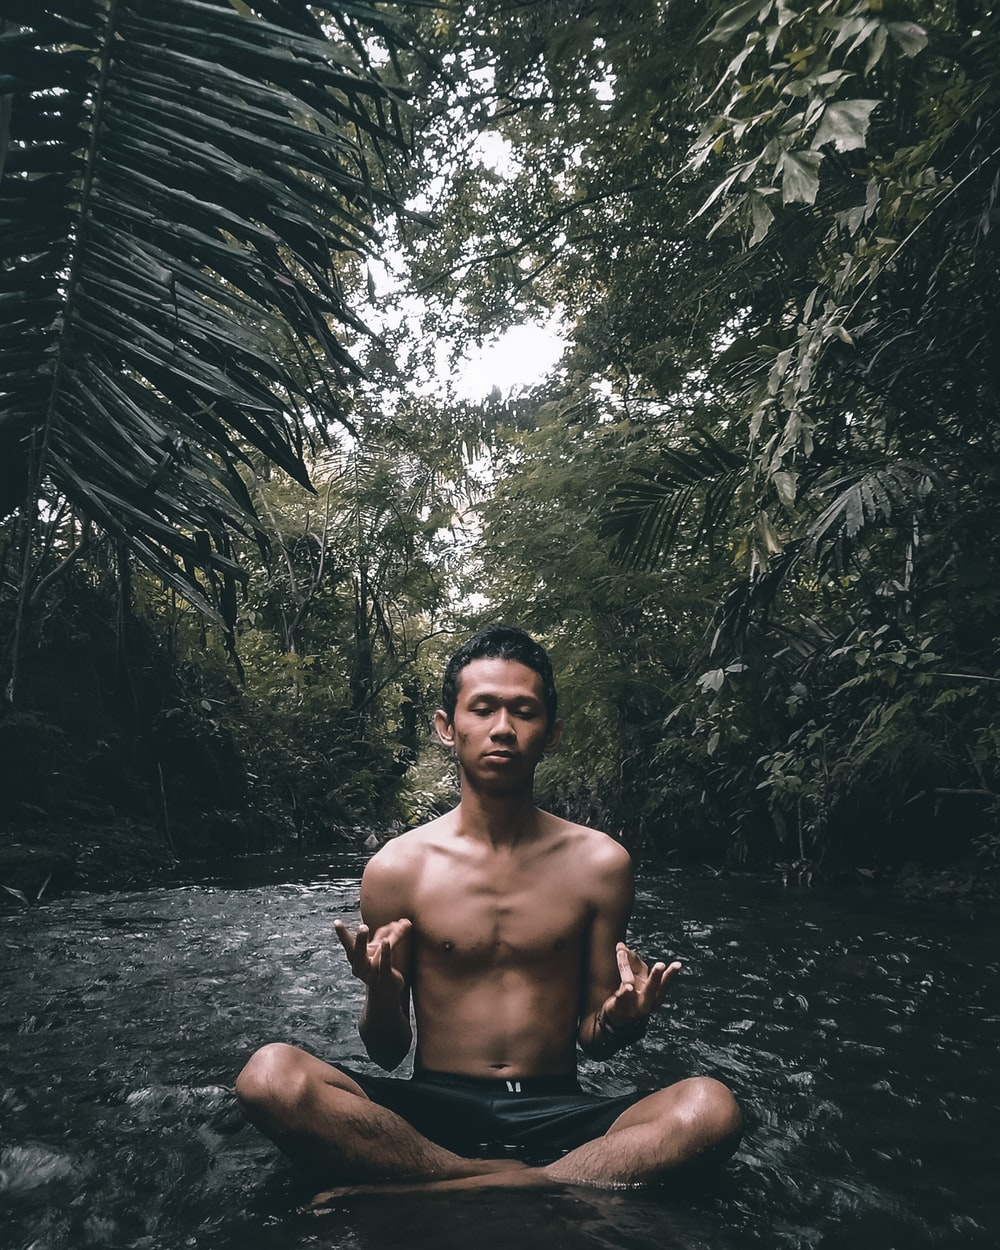 topless man sitting on water near green leaf trees during daytime